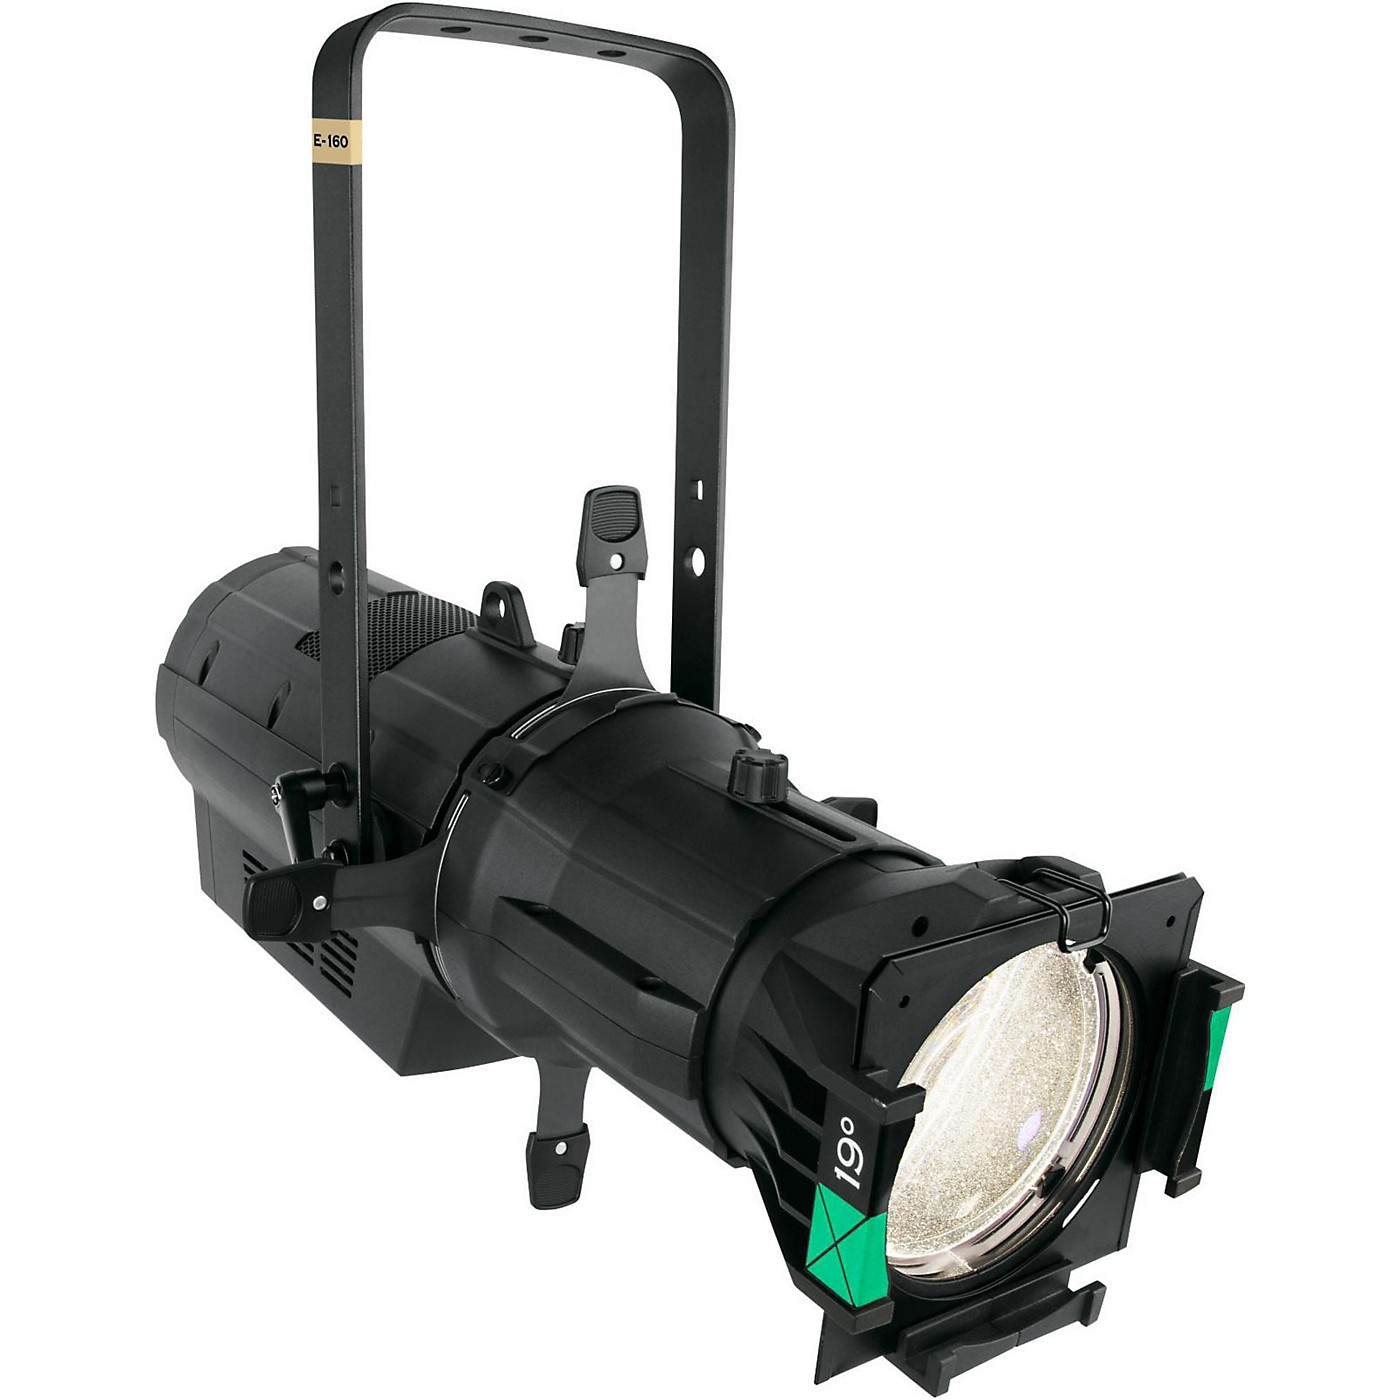 CHAUVET Professional Ovation E-160WW 88W LED Ellipsoidal Spotlight  Gobo thumbnail